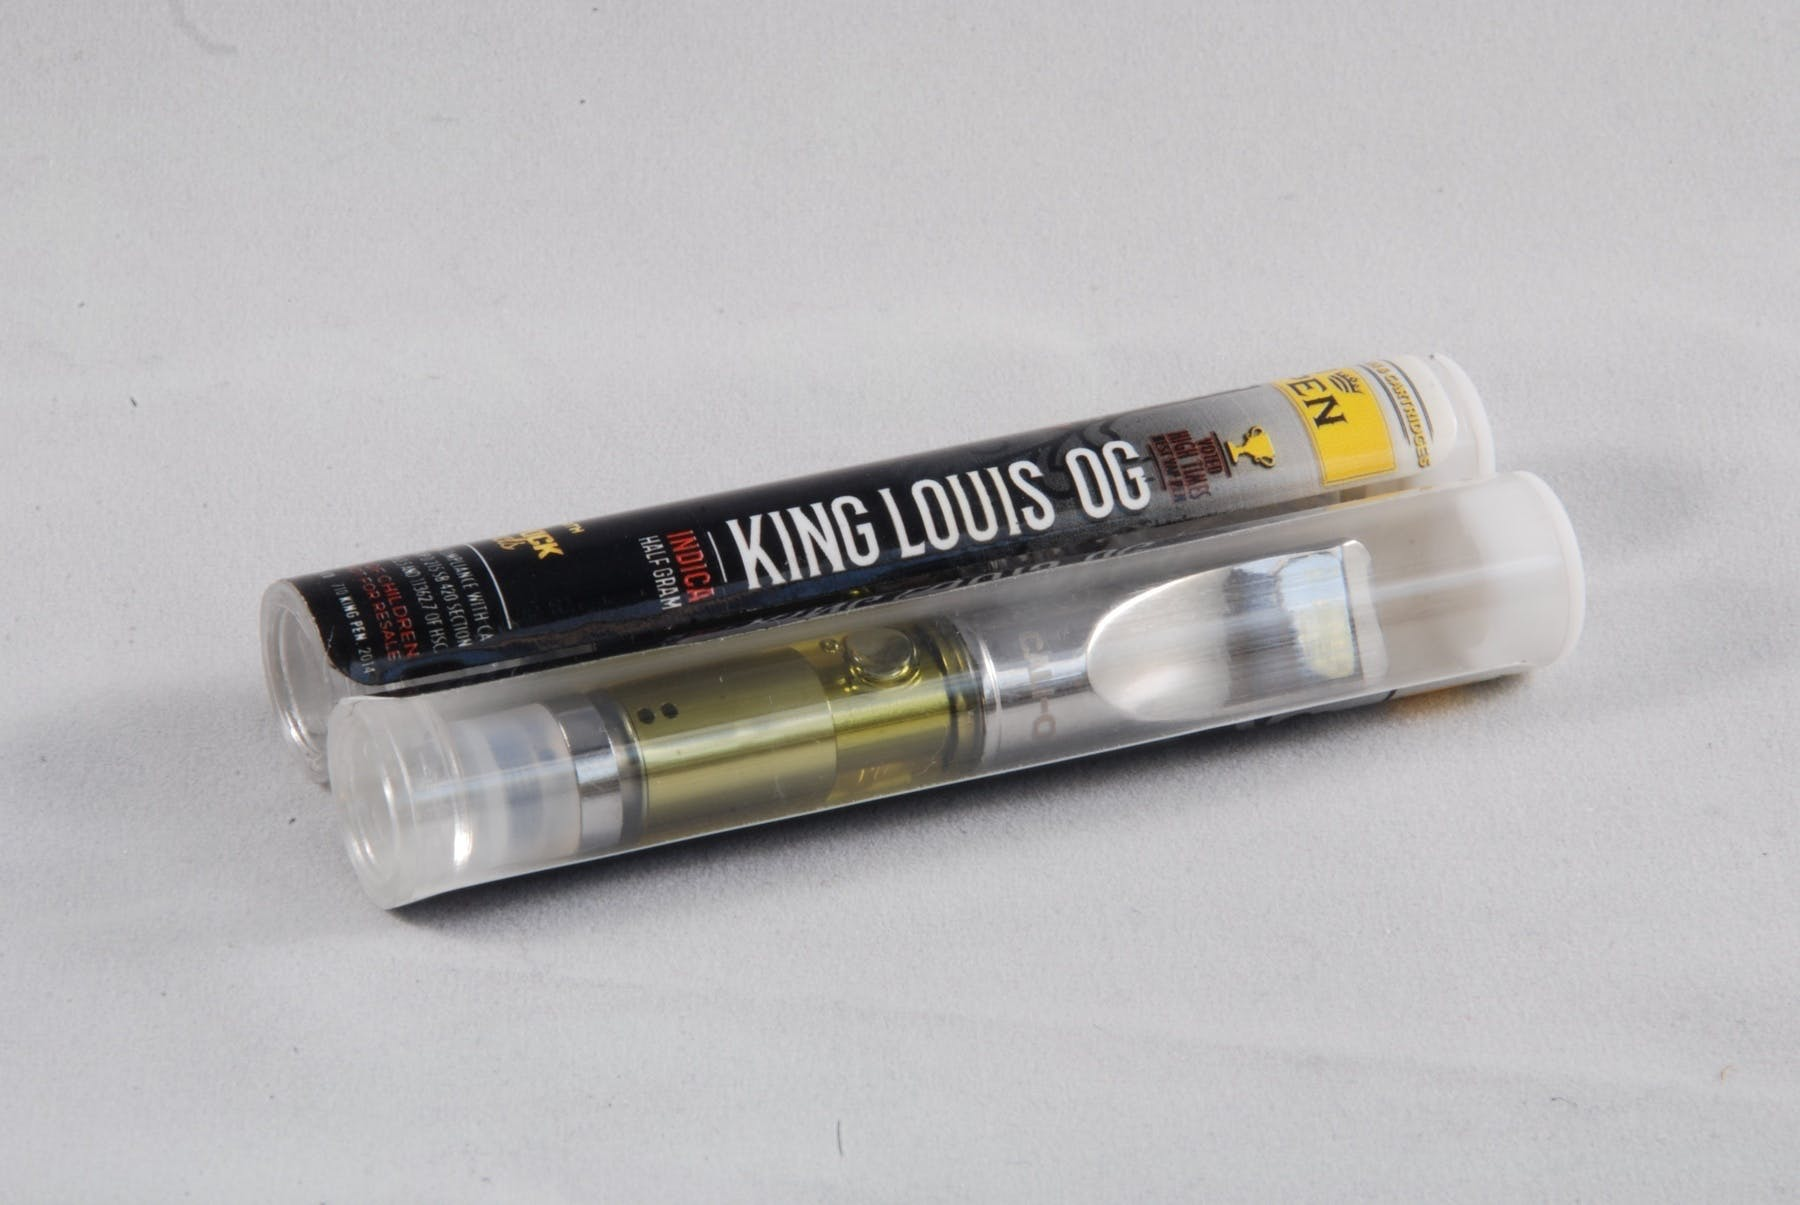 marijuana-dispensaries-pineapple-club-30-cap-in-redondo-beach-kingpen-king-louis-og-cartridge